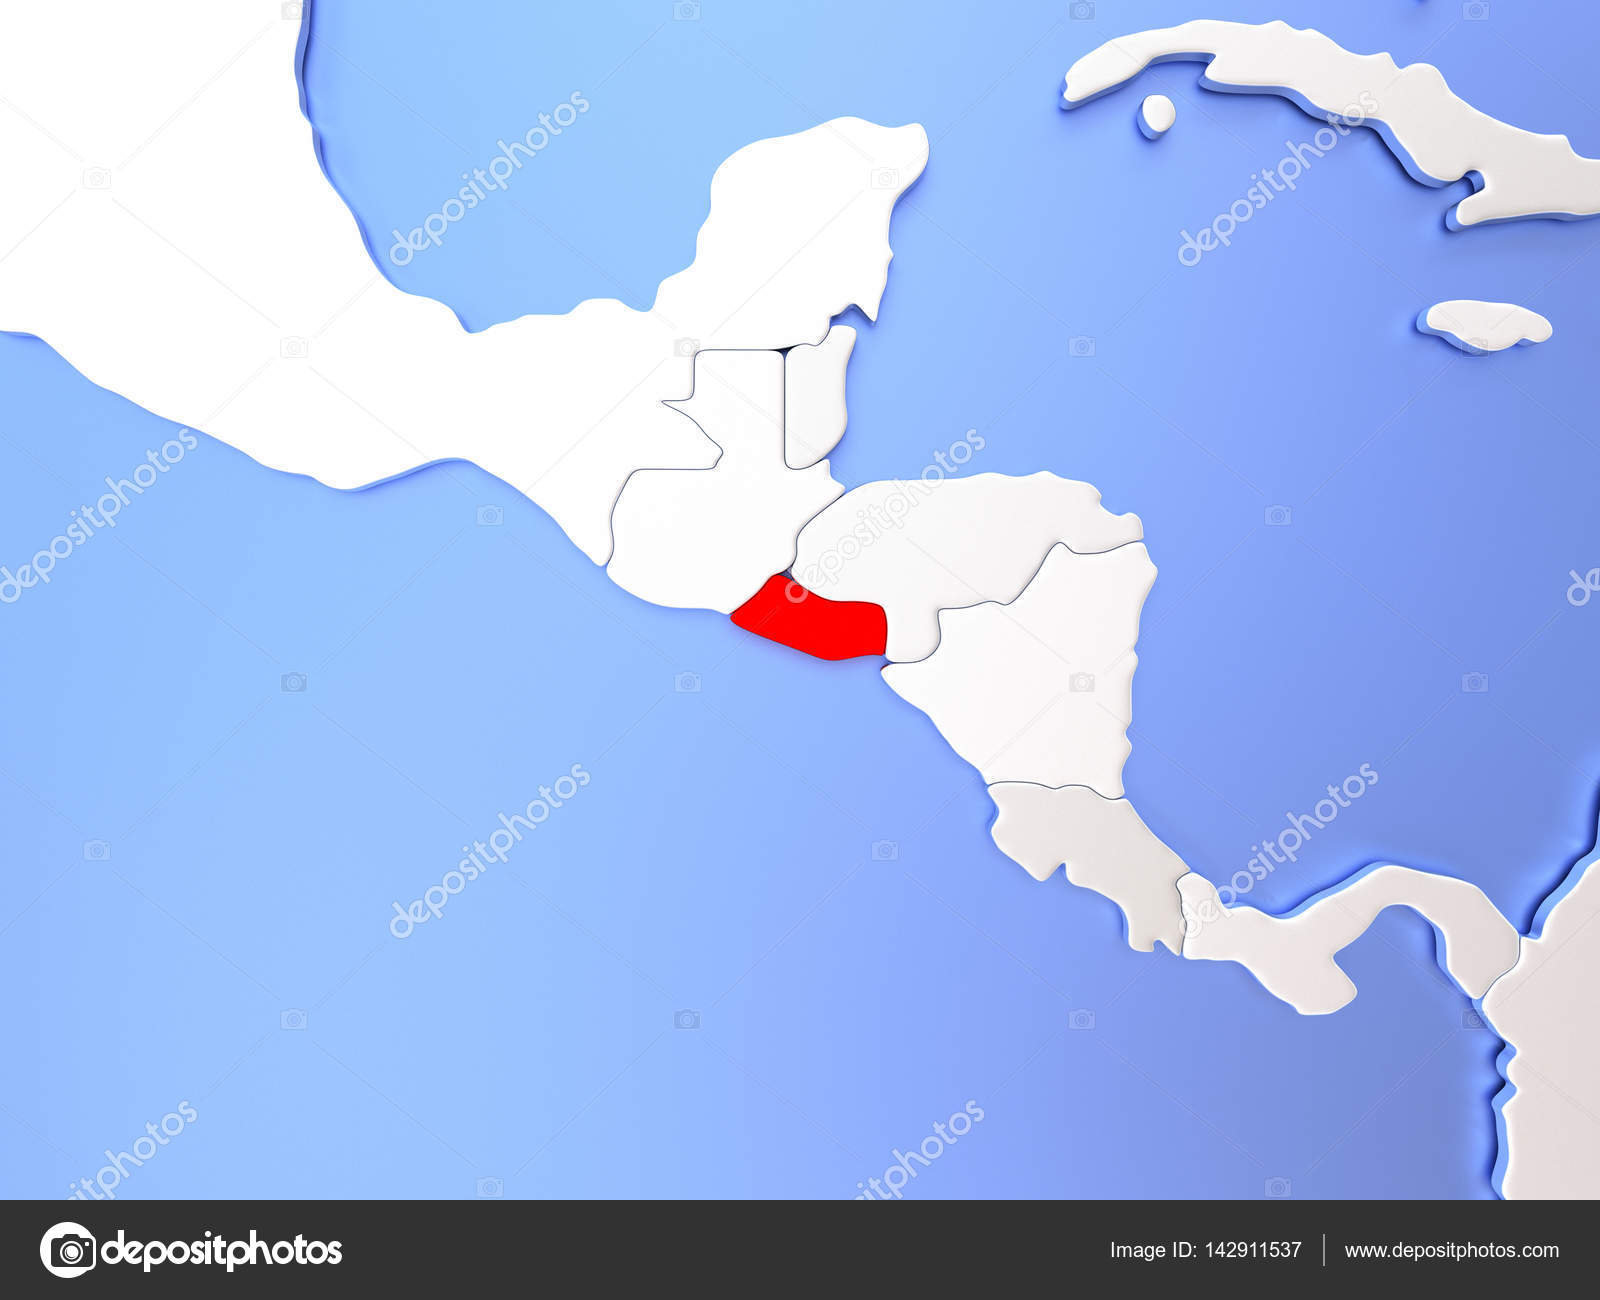 El Salvador in red on map — Stock Photo © tom.griger #142911537 on uruguay map, bage map, lima map, brazil map, nicaragua map, kusti map, the landing map, buenos aires map, costa rica map, taiohae map, sert map, mexico map, honduras map, peruana map, central america map, santiago map, passo fundo map, caracas map, south america map, world map,